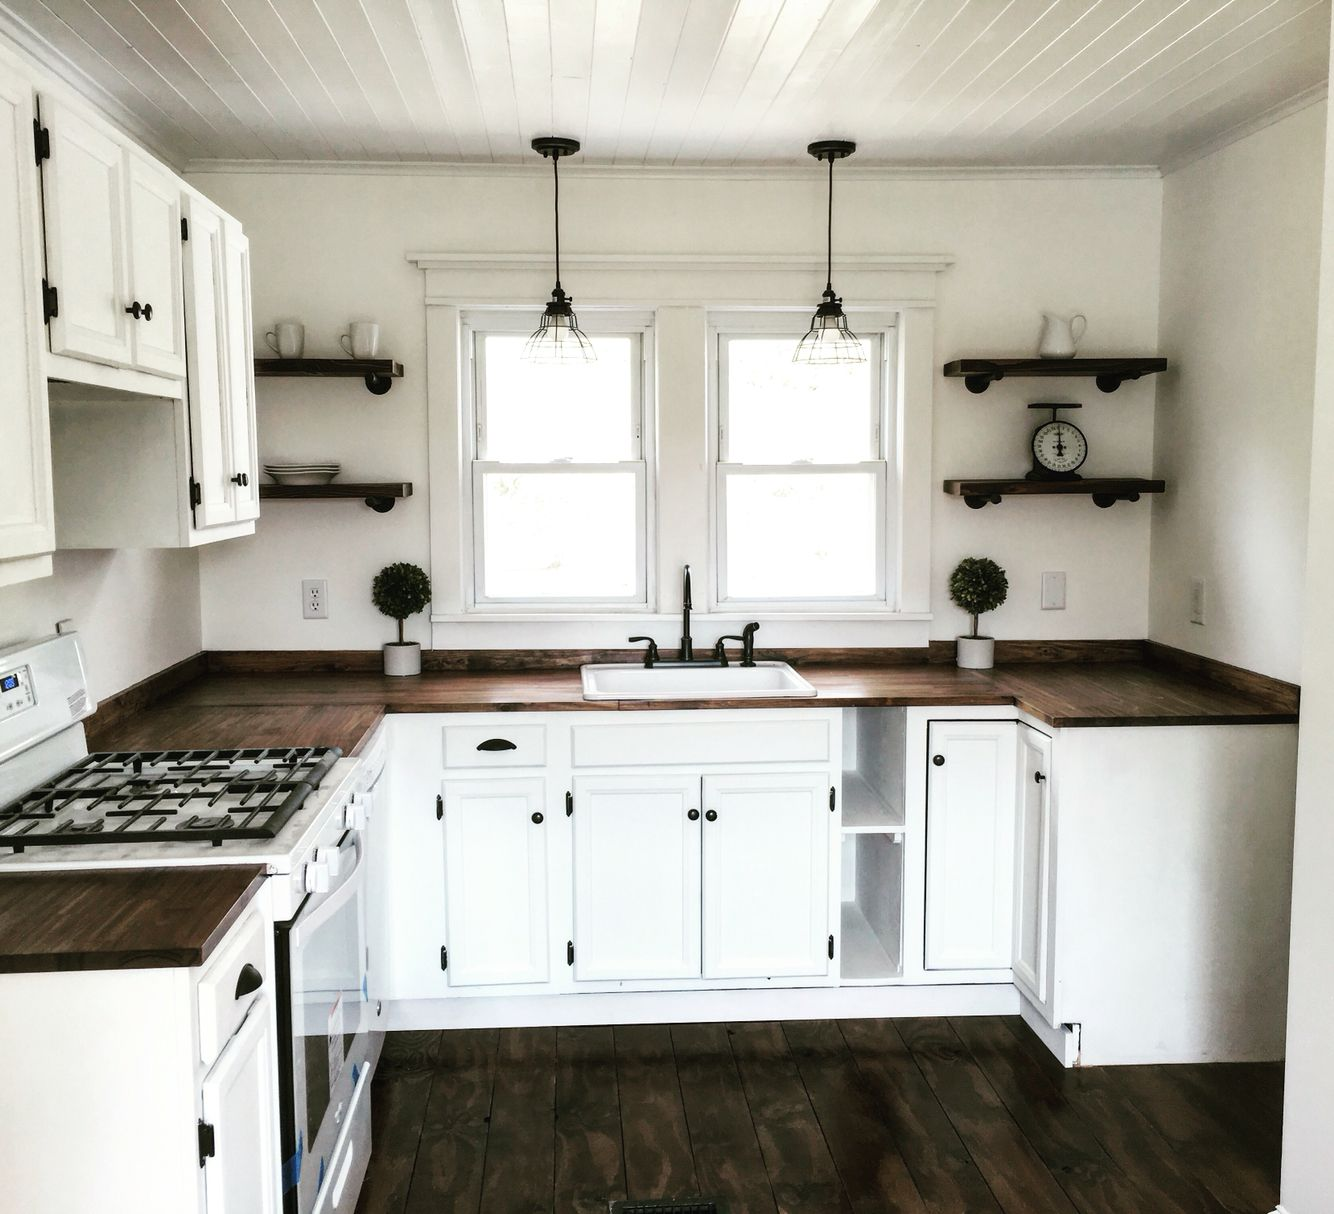 Farmhouse kitchen on the cheap cabinets from craigslist for Cheap kitchens